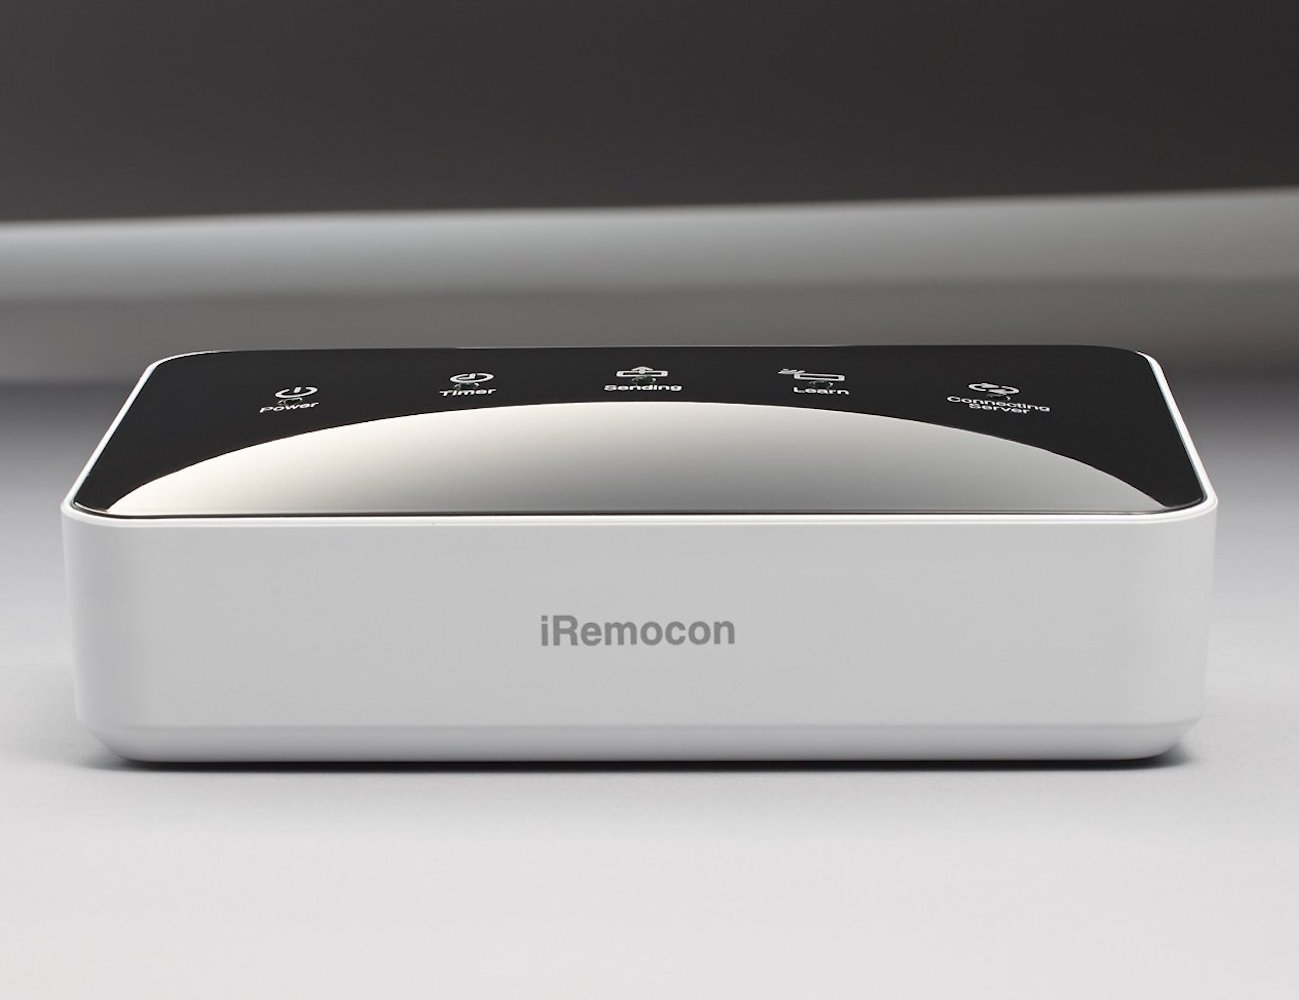 iRemocon – The Ultimate Learning Remote Control